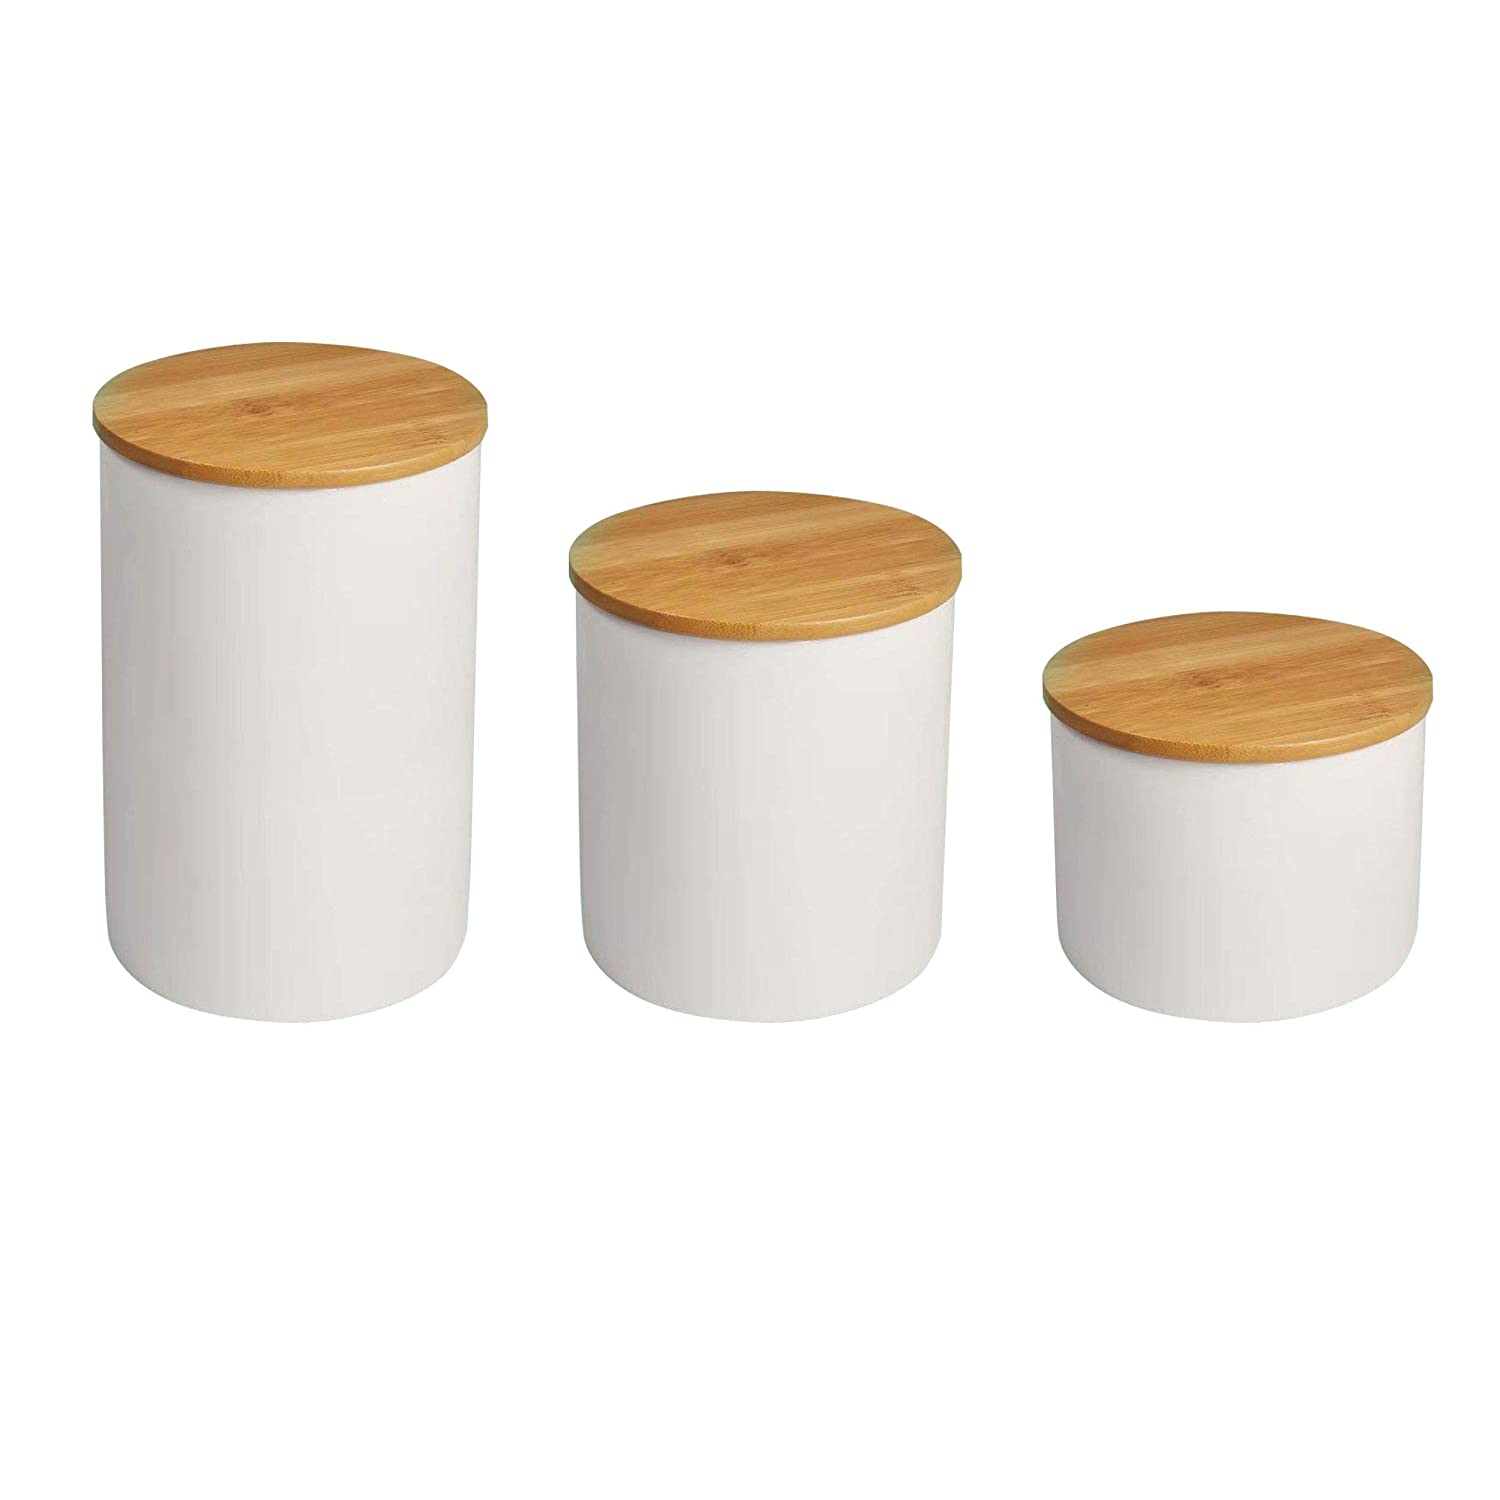 Food Storage Jar with Bamboo Lid- White Ceramic Food storage canister for serving Coffee, Tea, Bean and More/A Set of 3pcs